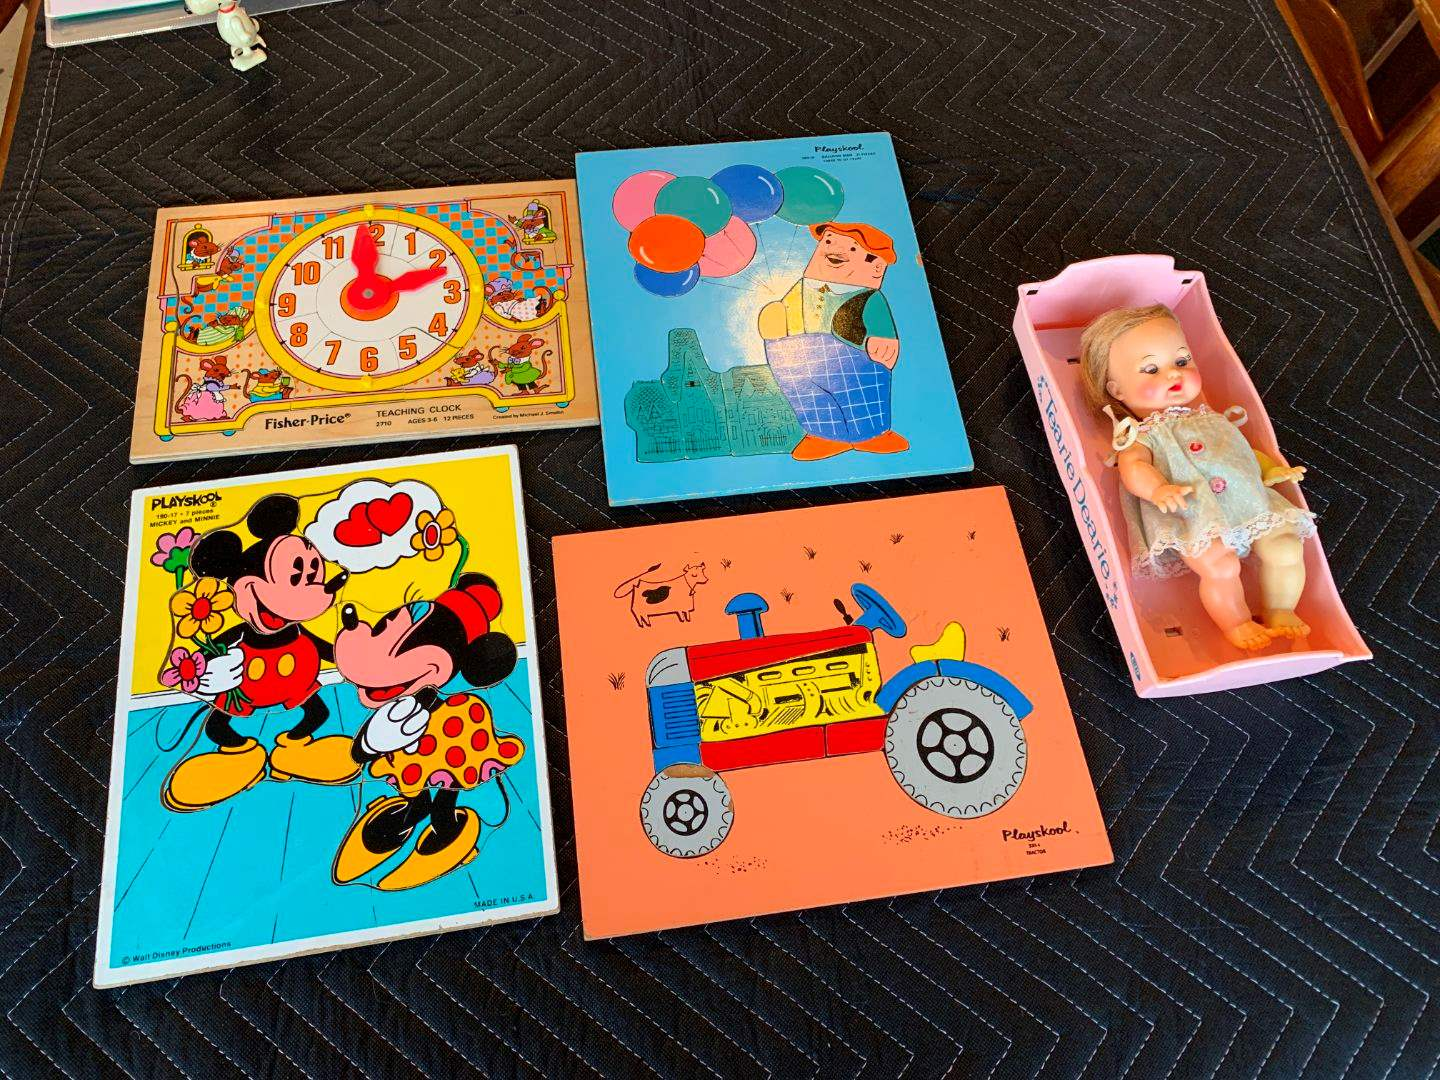 19 Vintage Playskool Puzzles and Tearie Dearie (main image)